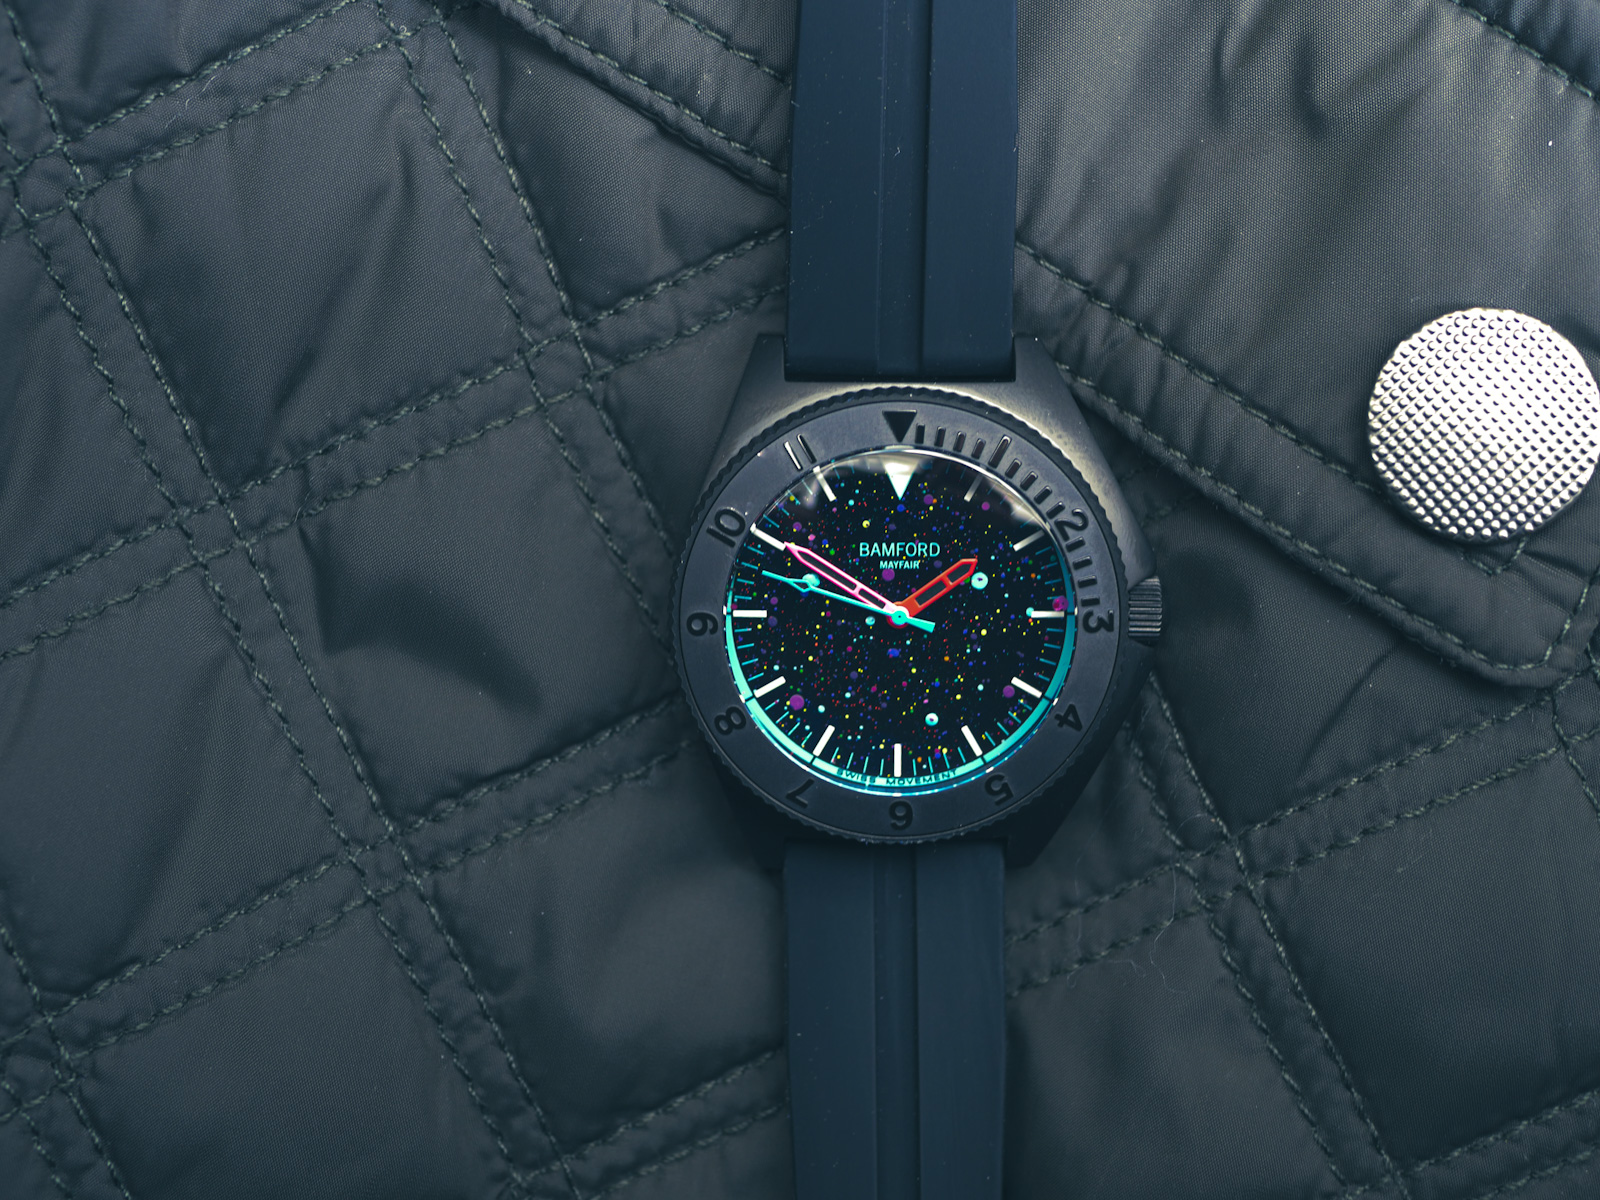 INTRODUCING: An exclusive space odyssey with the Dial Artist x Bamford Cosmic Rainbow.